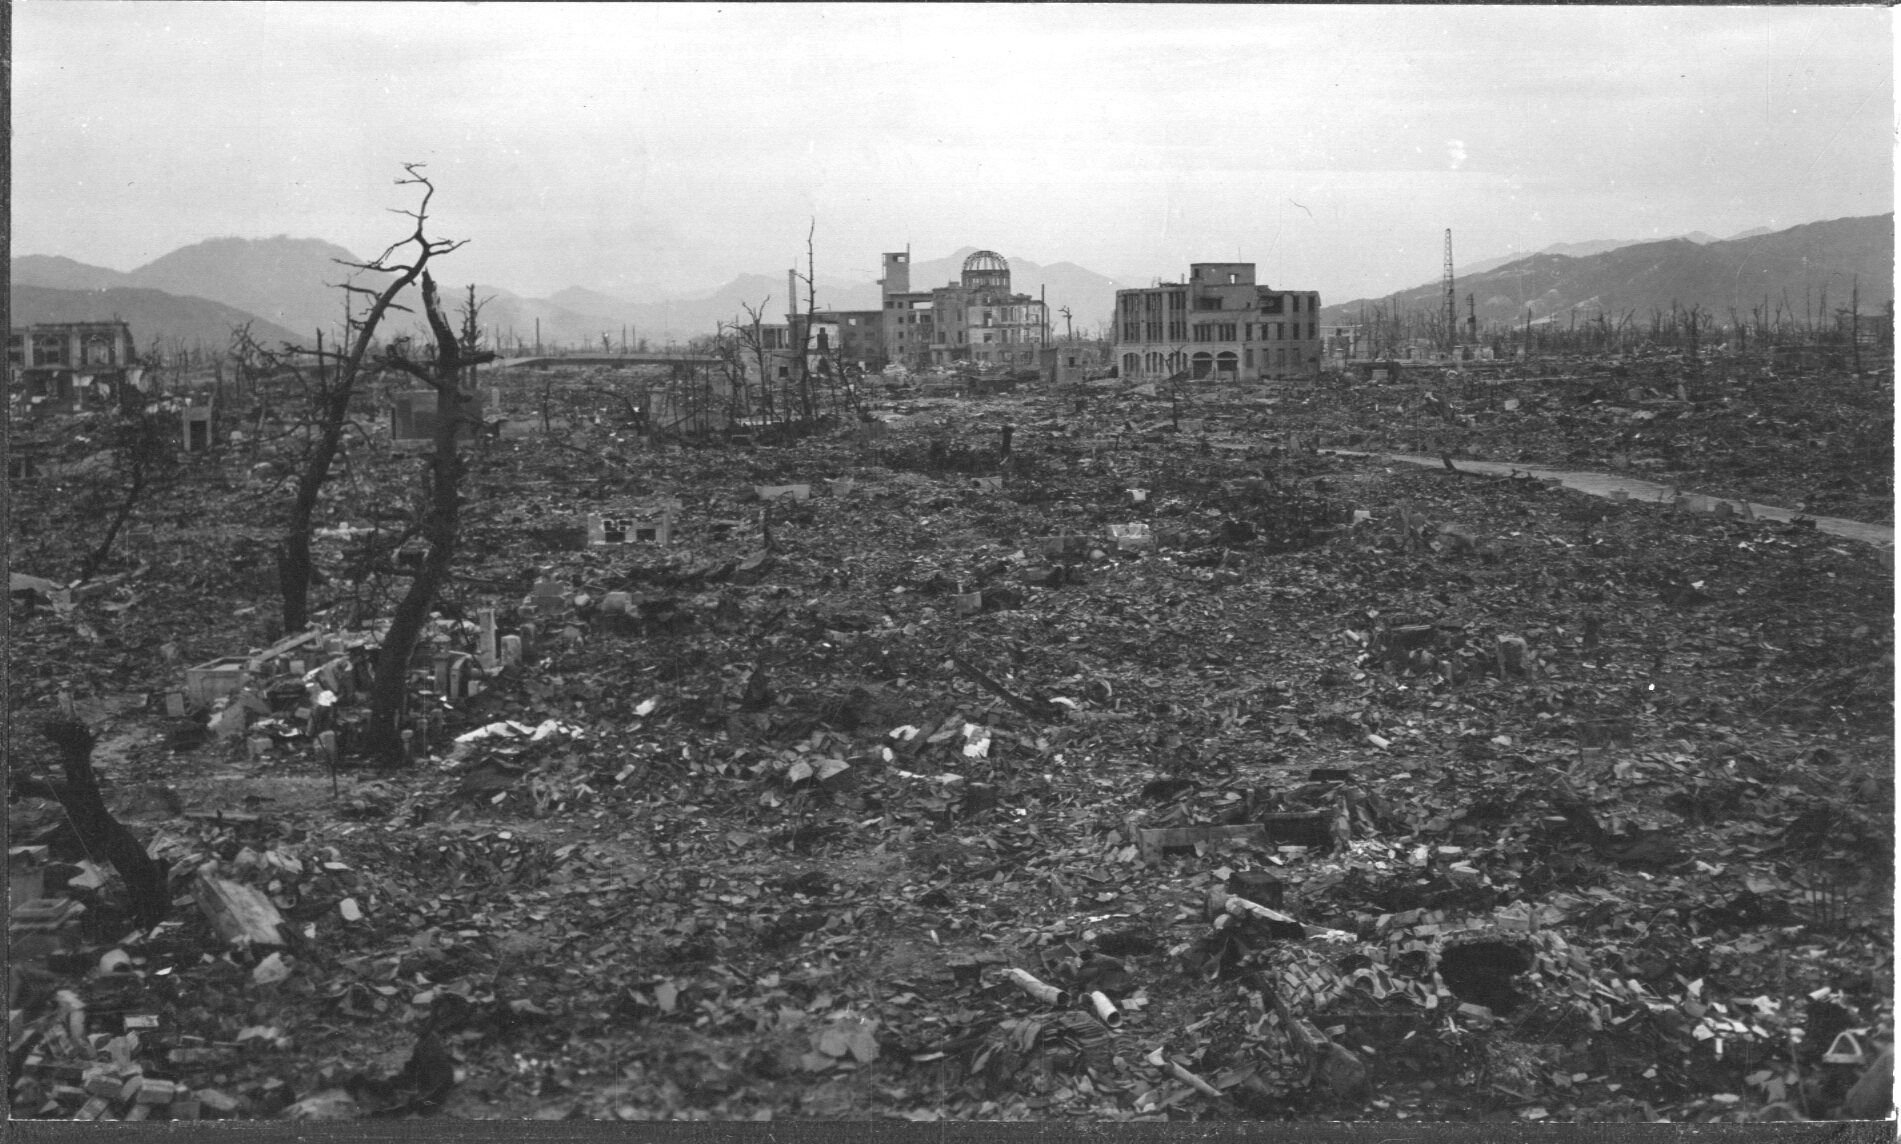 hiroshima bombing For years the question has lingered: should the us apologize for dropping the atomic bomb on hiroshima.